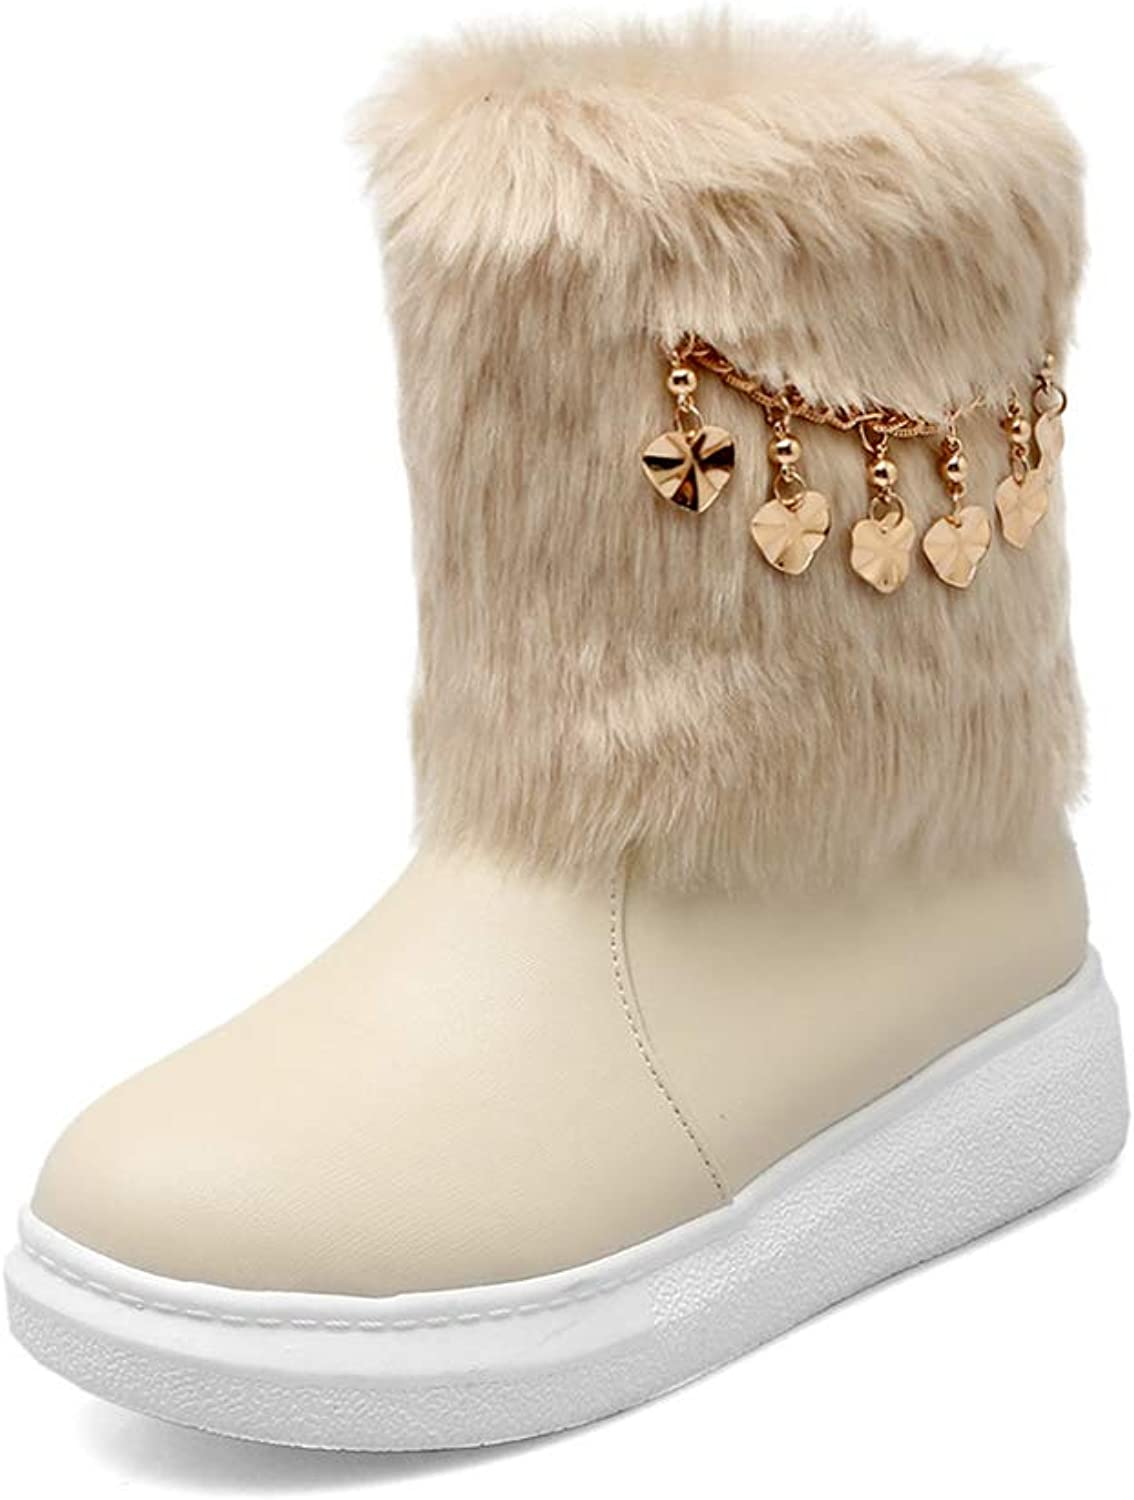 TWGDH Flat Waterproof Snow Ankle Boots Ladies Faux Fur Furry Winter Low Heel Casual Booties Non Slip Outdoor shoes